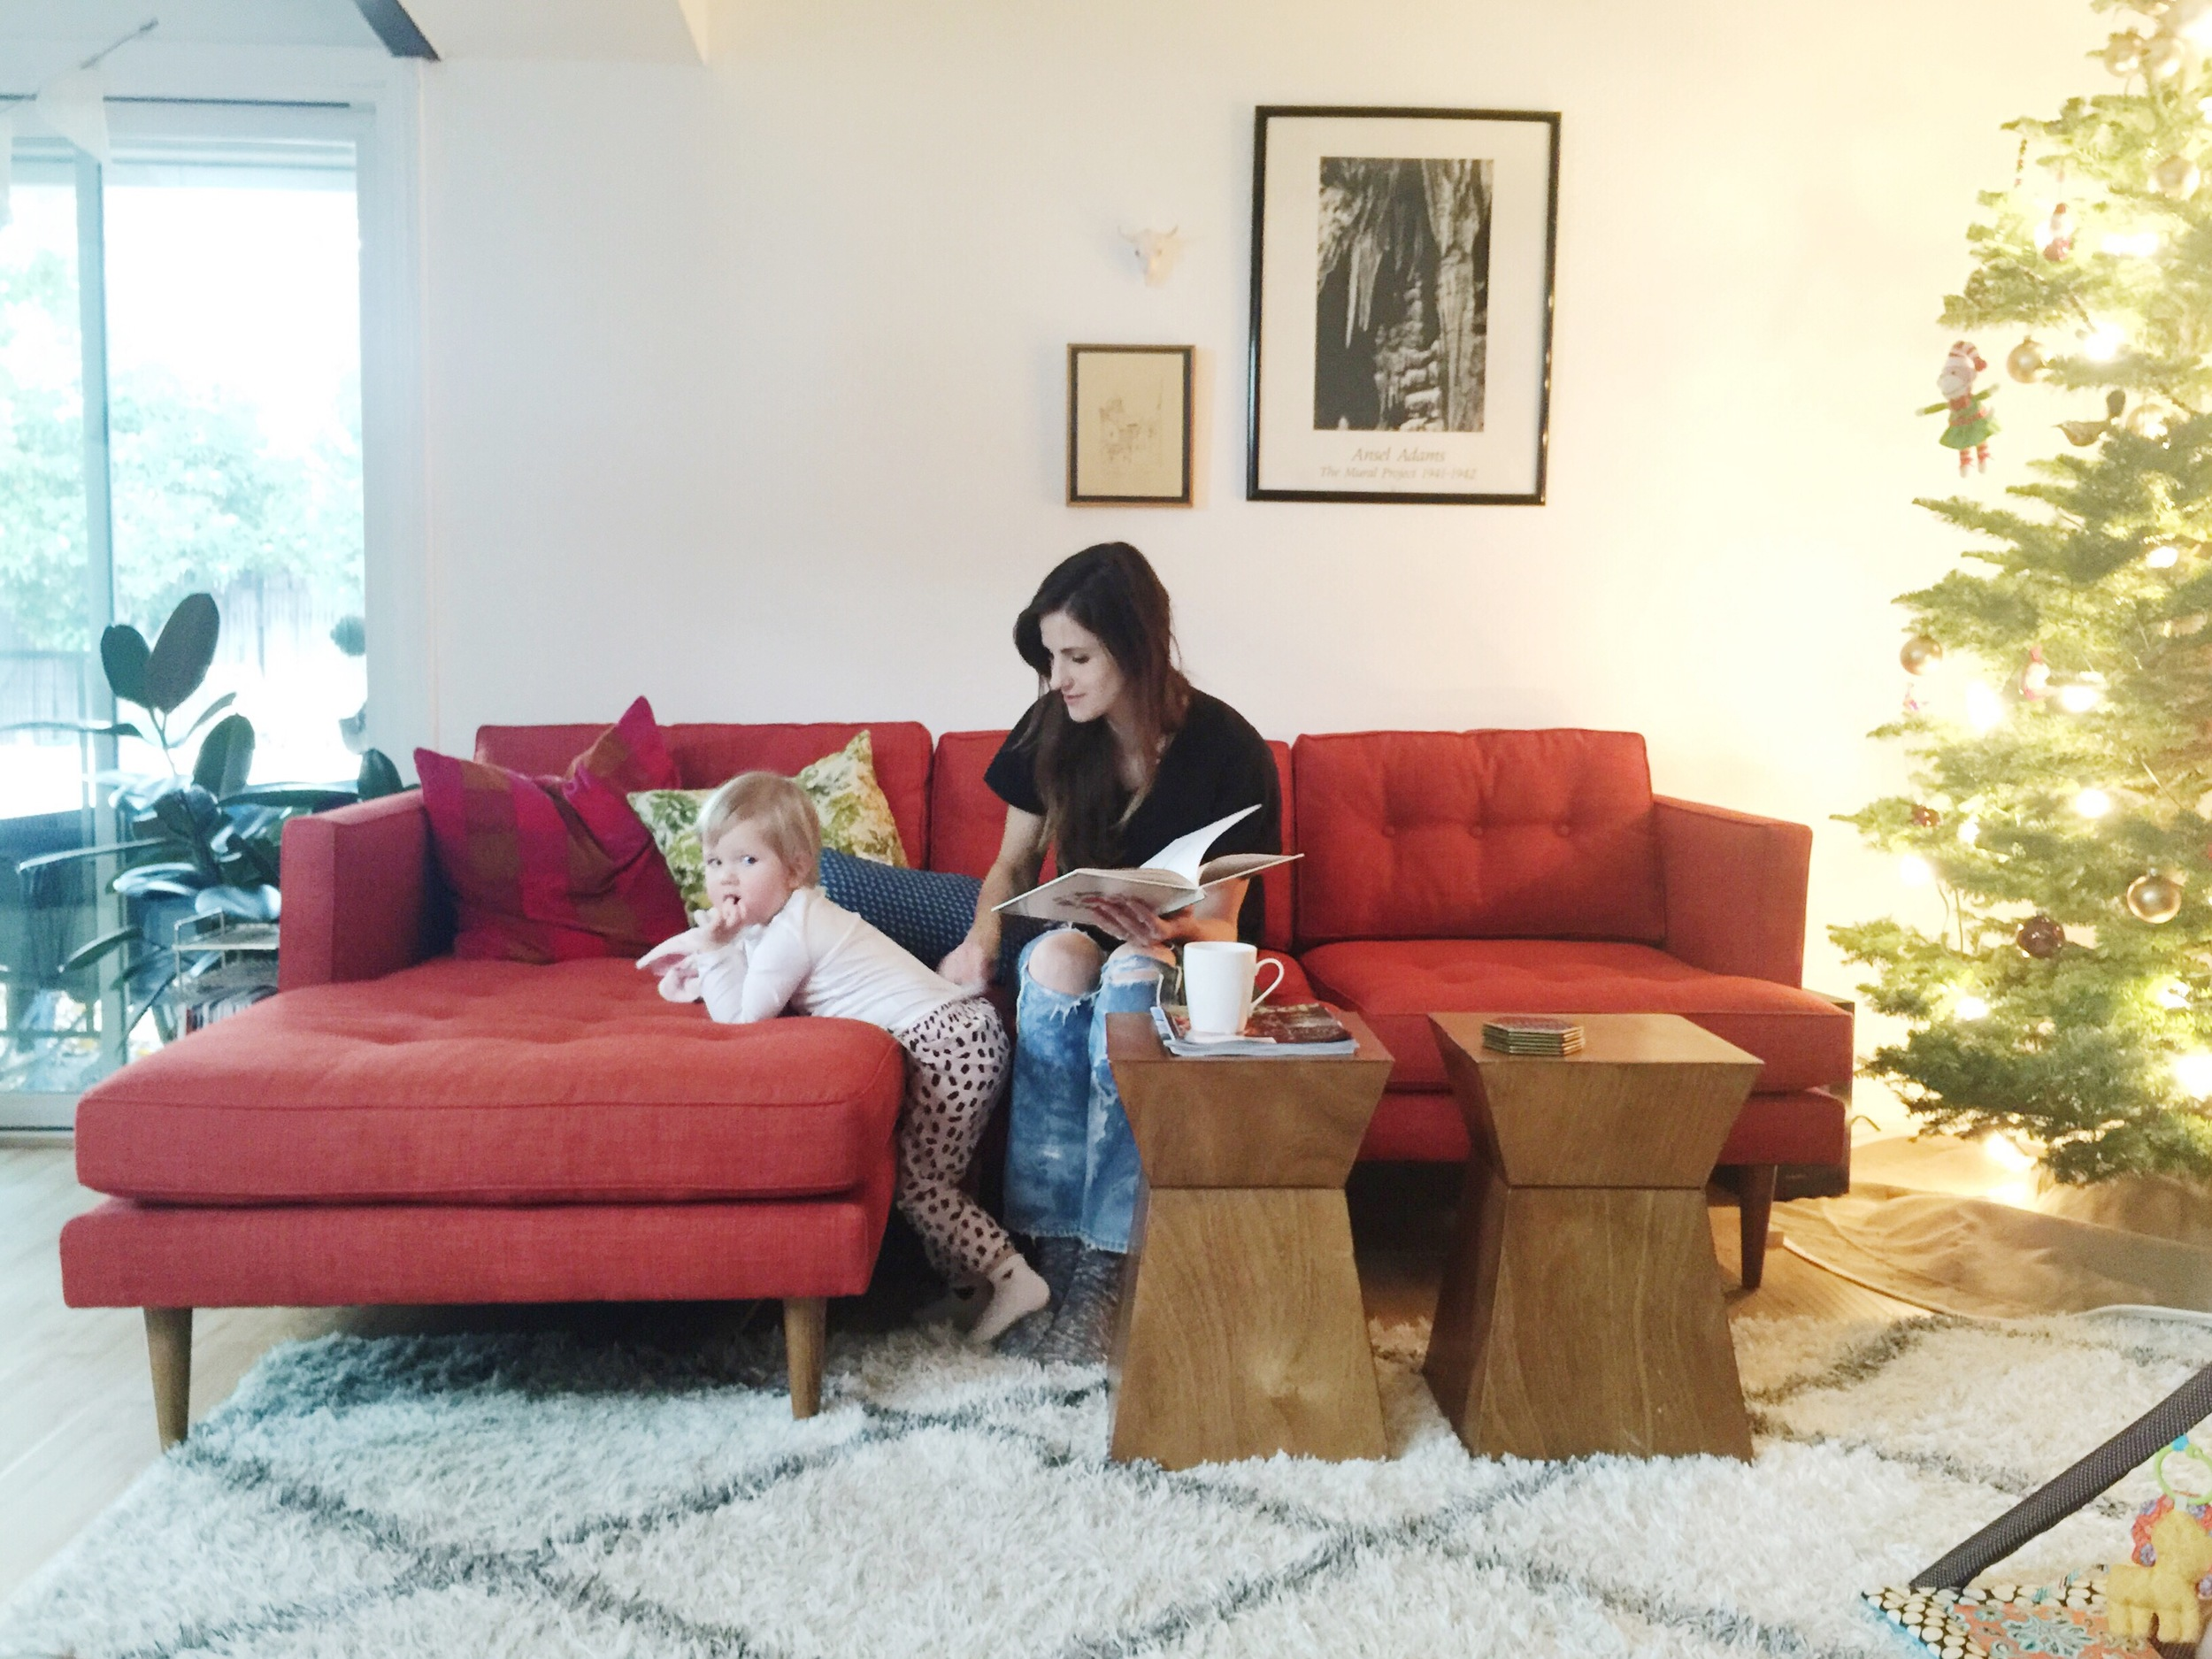 Simple warmth in a crimson baseless sofa, a geometric coffee table pair in wood by the tree.